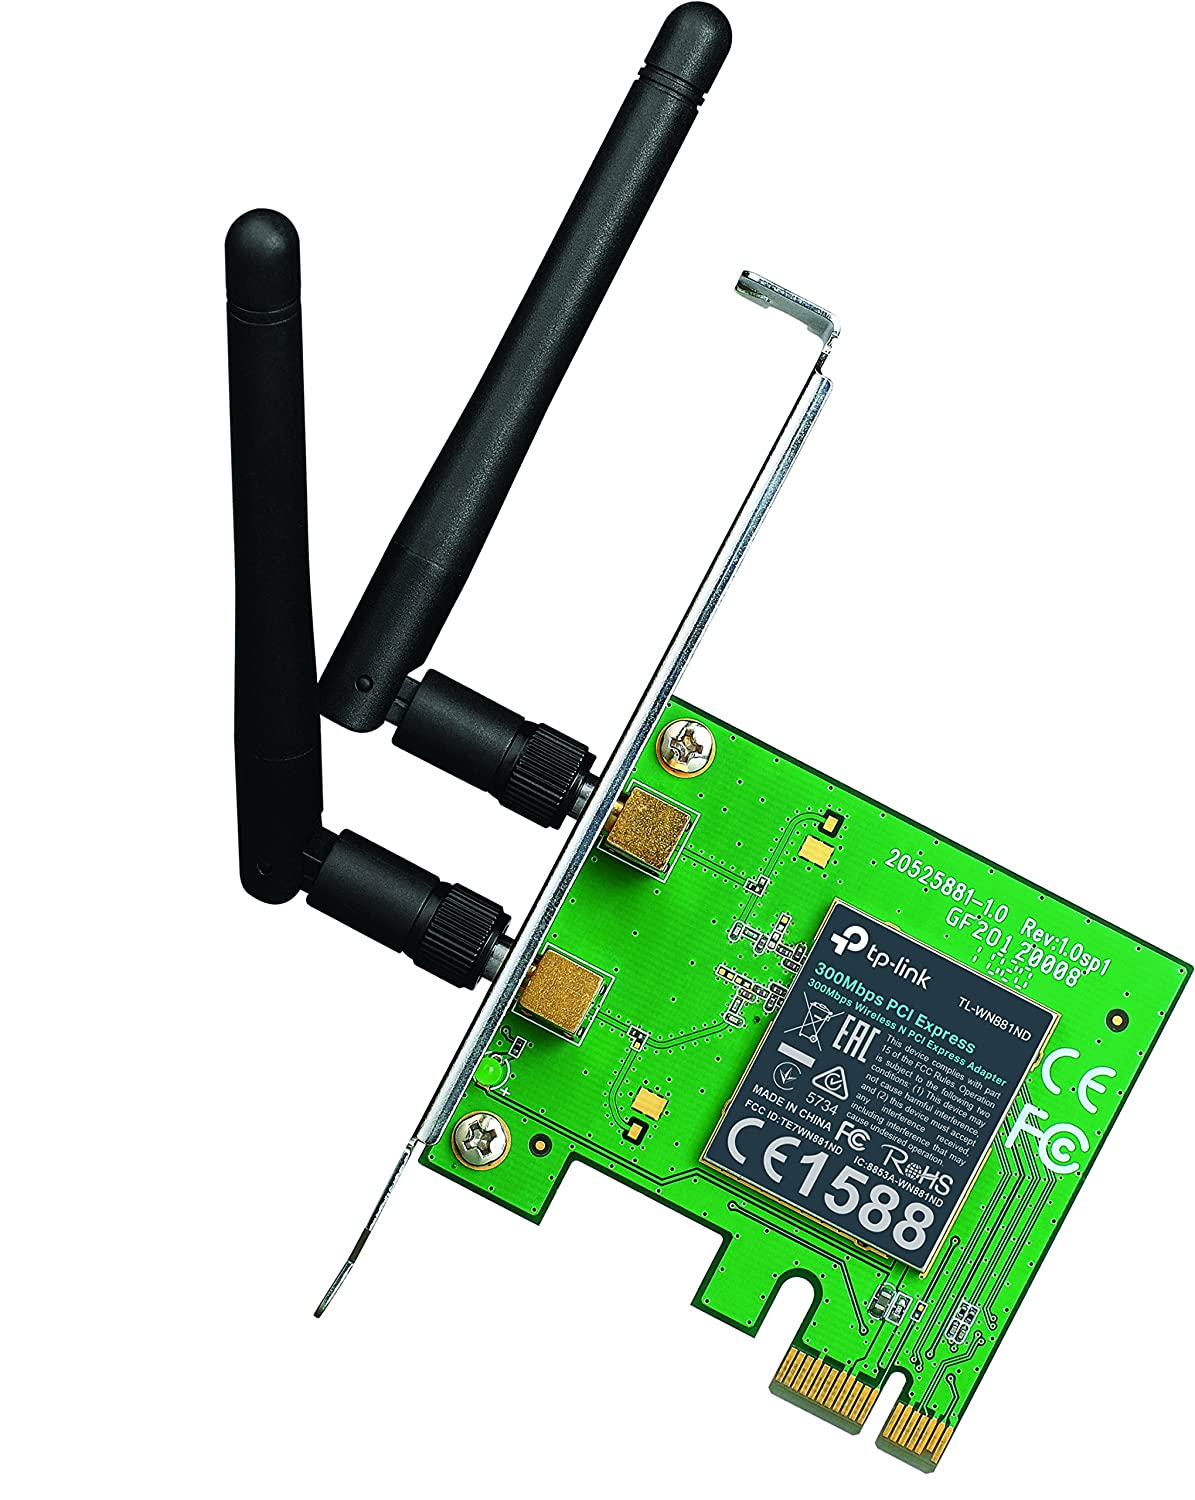 tp link tl wn881nd 300mbps wireless n pci express adapter wifi card ebay. Black Bedroom Furniture Sets. Home Design Ideas